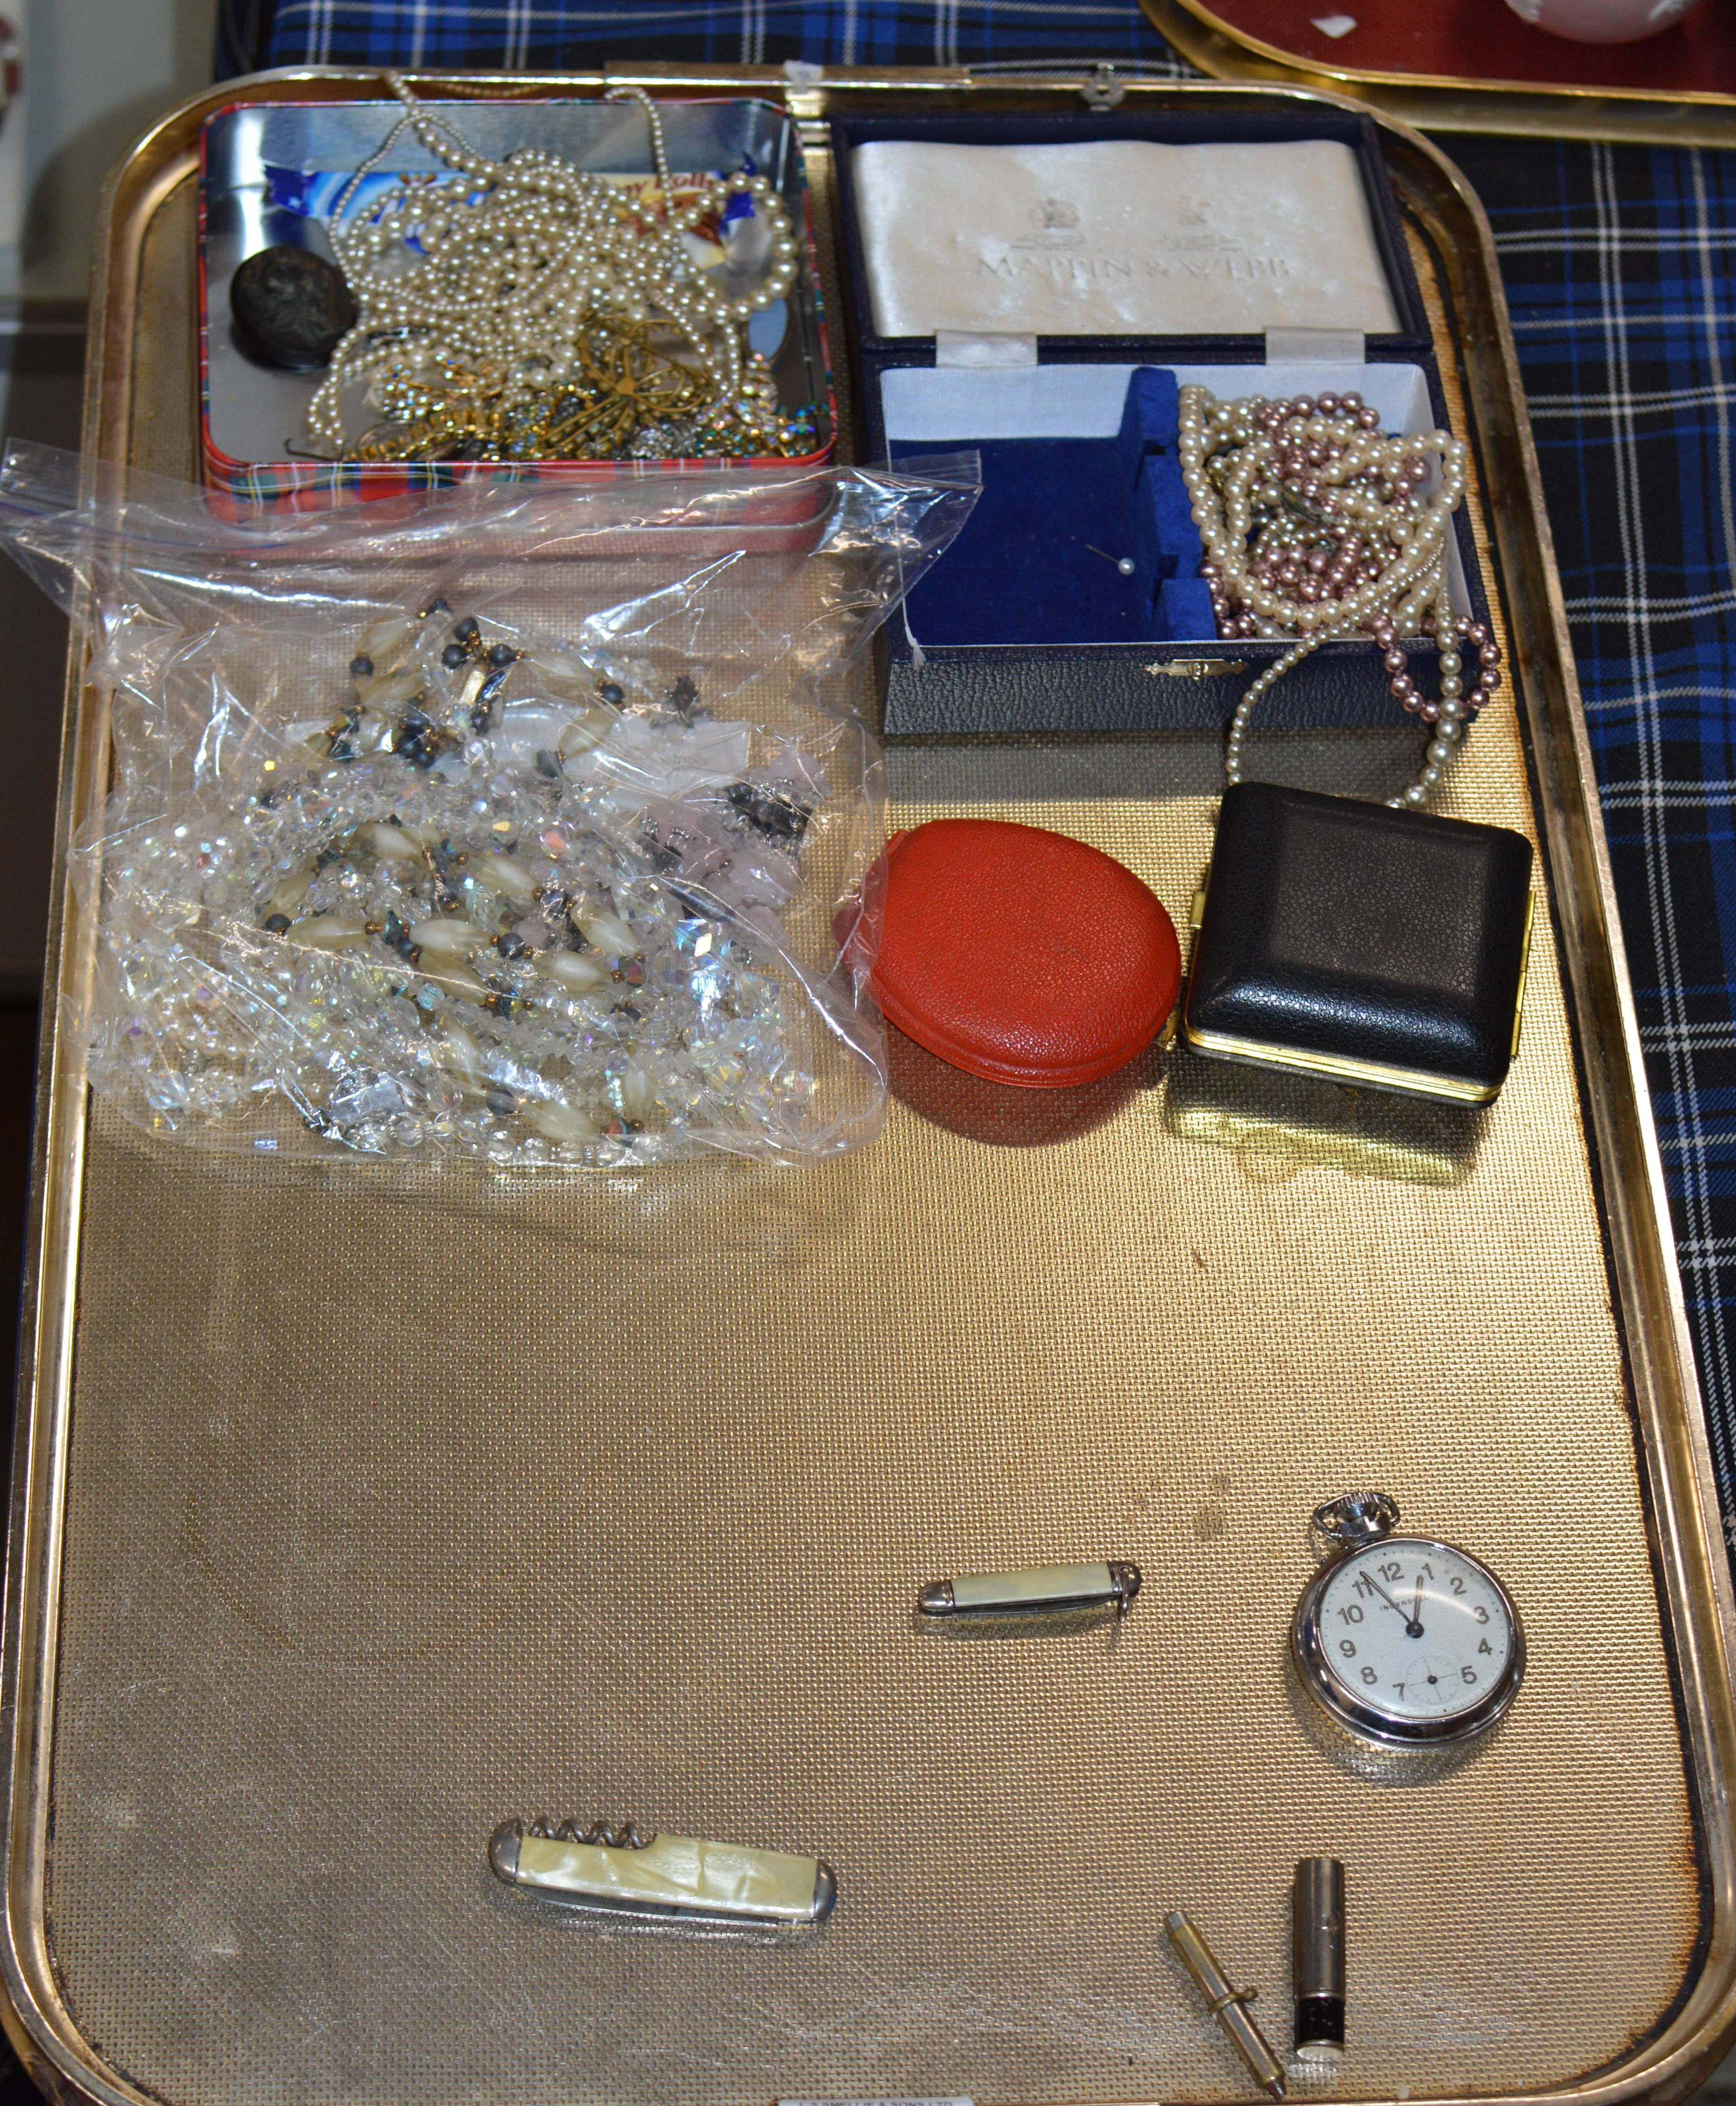 Lot 509 - TRAY CONTAINING VARIOUS COSTUME JEWELLERY, LAVA STYLE BROOCH, BEADS, TRAVEL CLOCKS, PEN KNIVES,